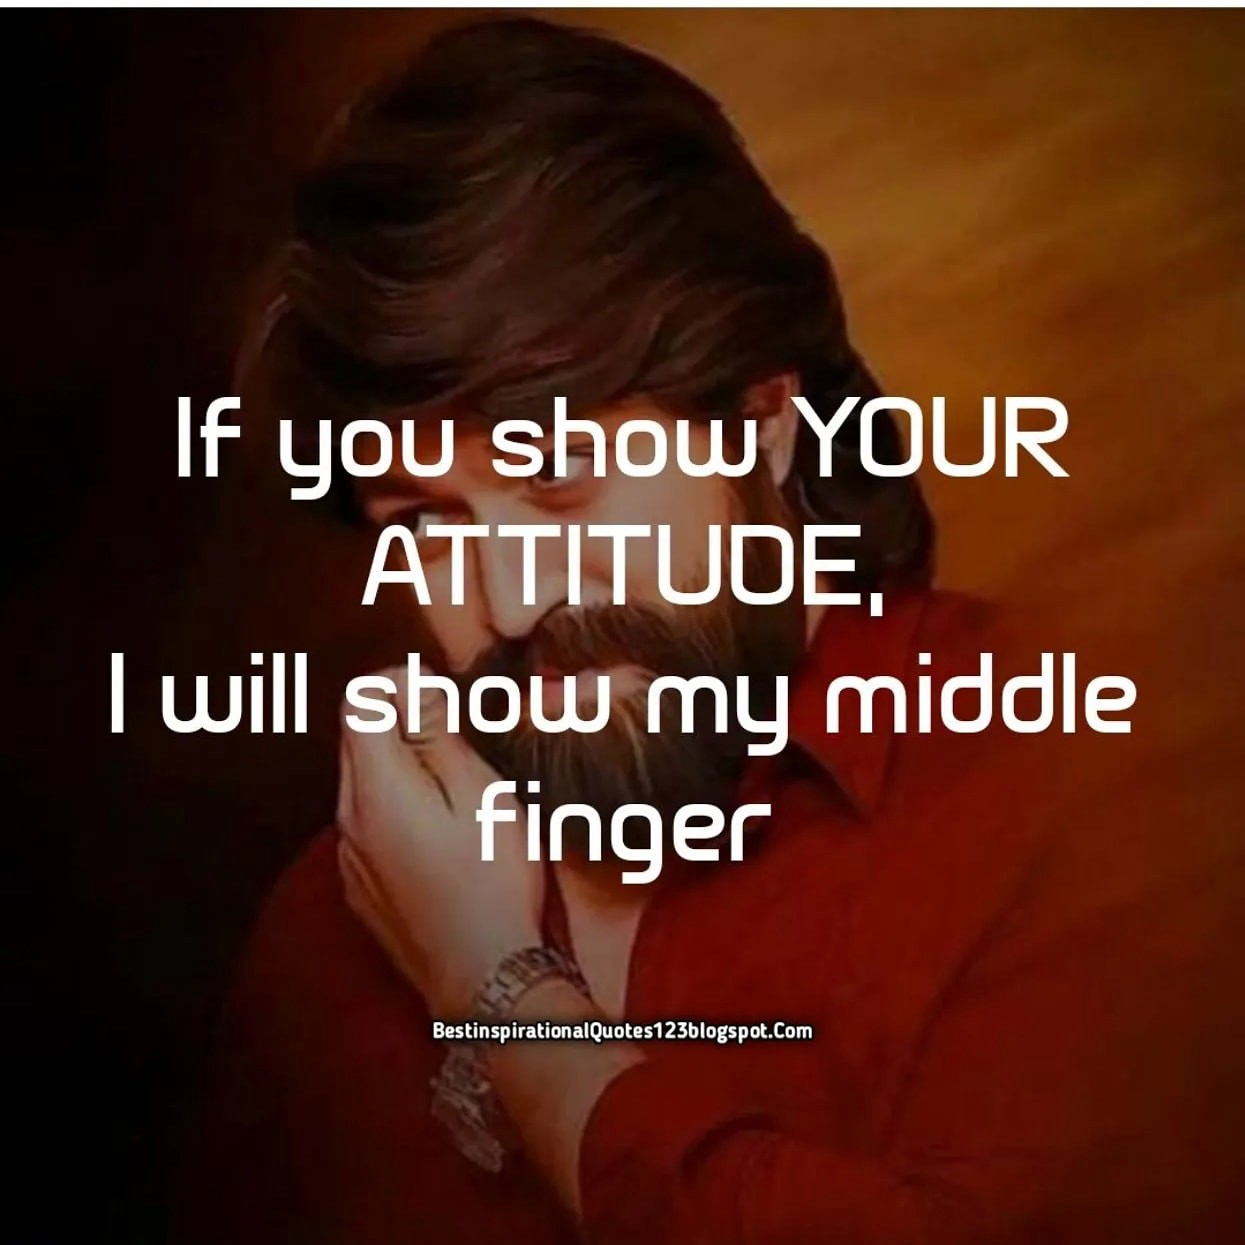 300 Positive Quotes On Attitude Latest 2020 Quotes By Motivational Quotes Medium